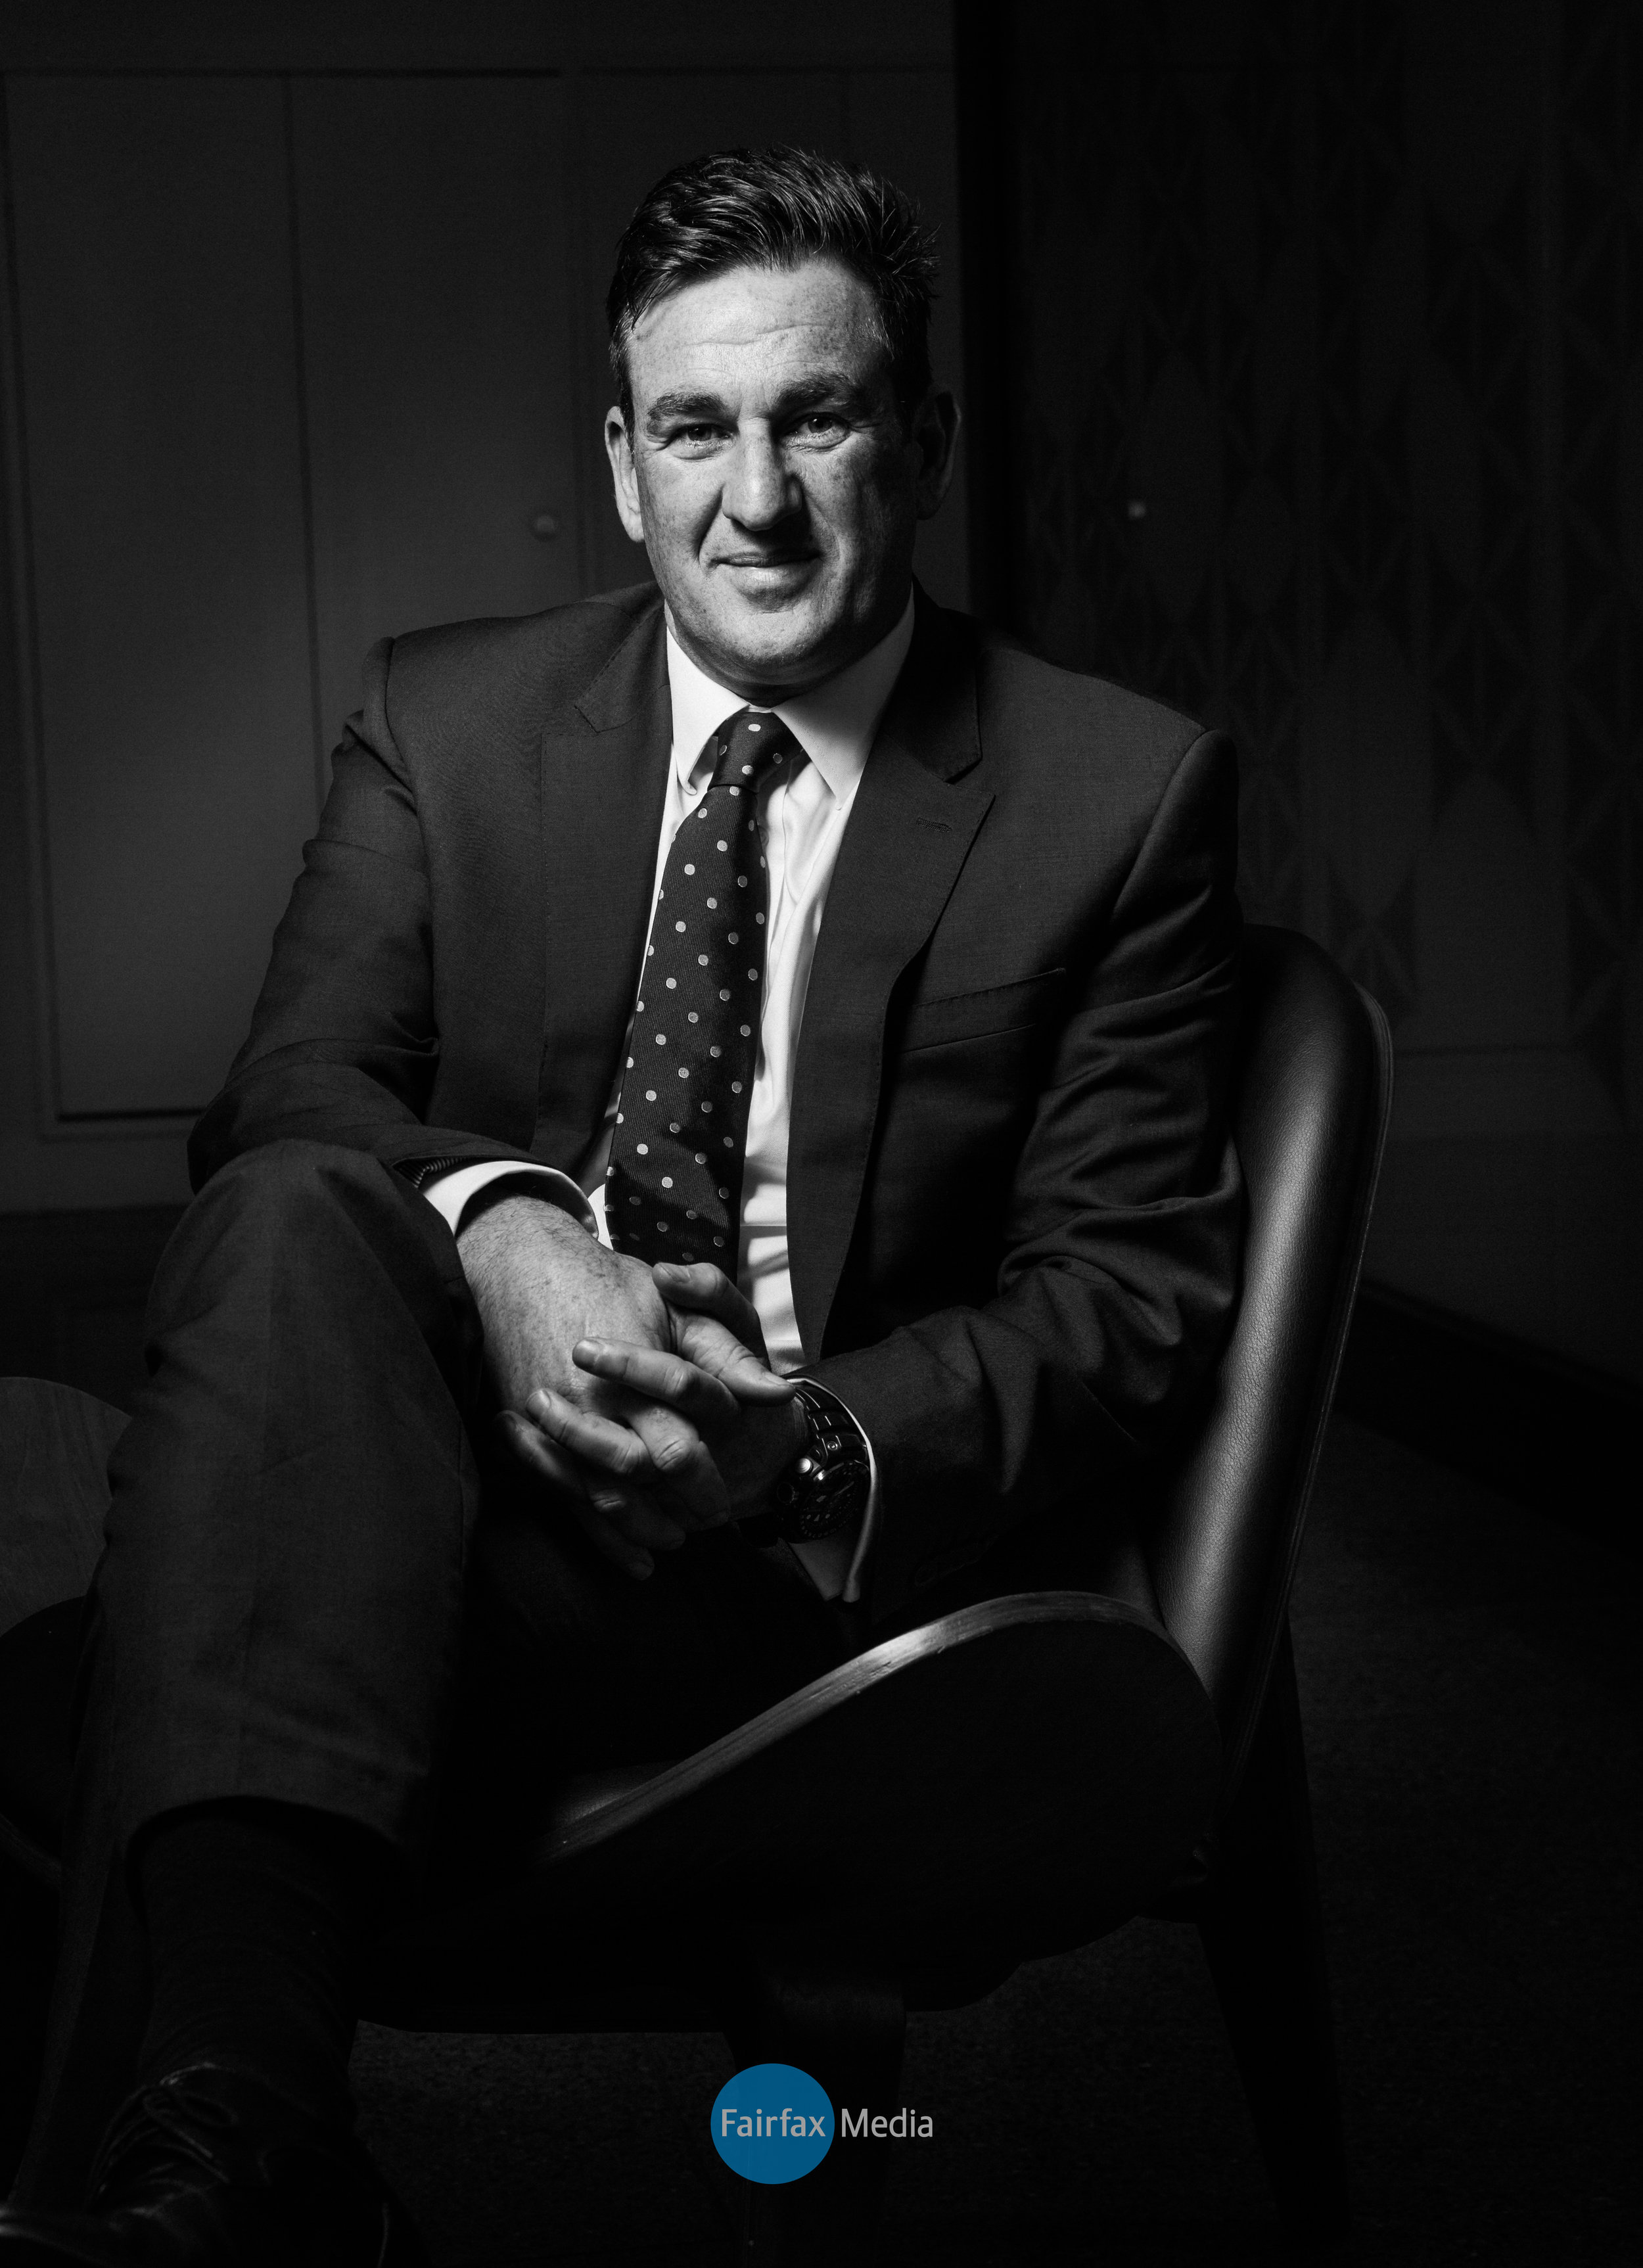 corporate executive portrait photography in black and white